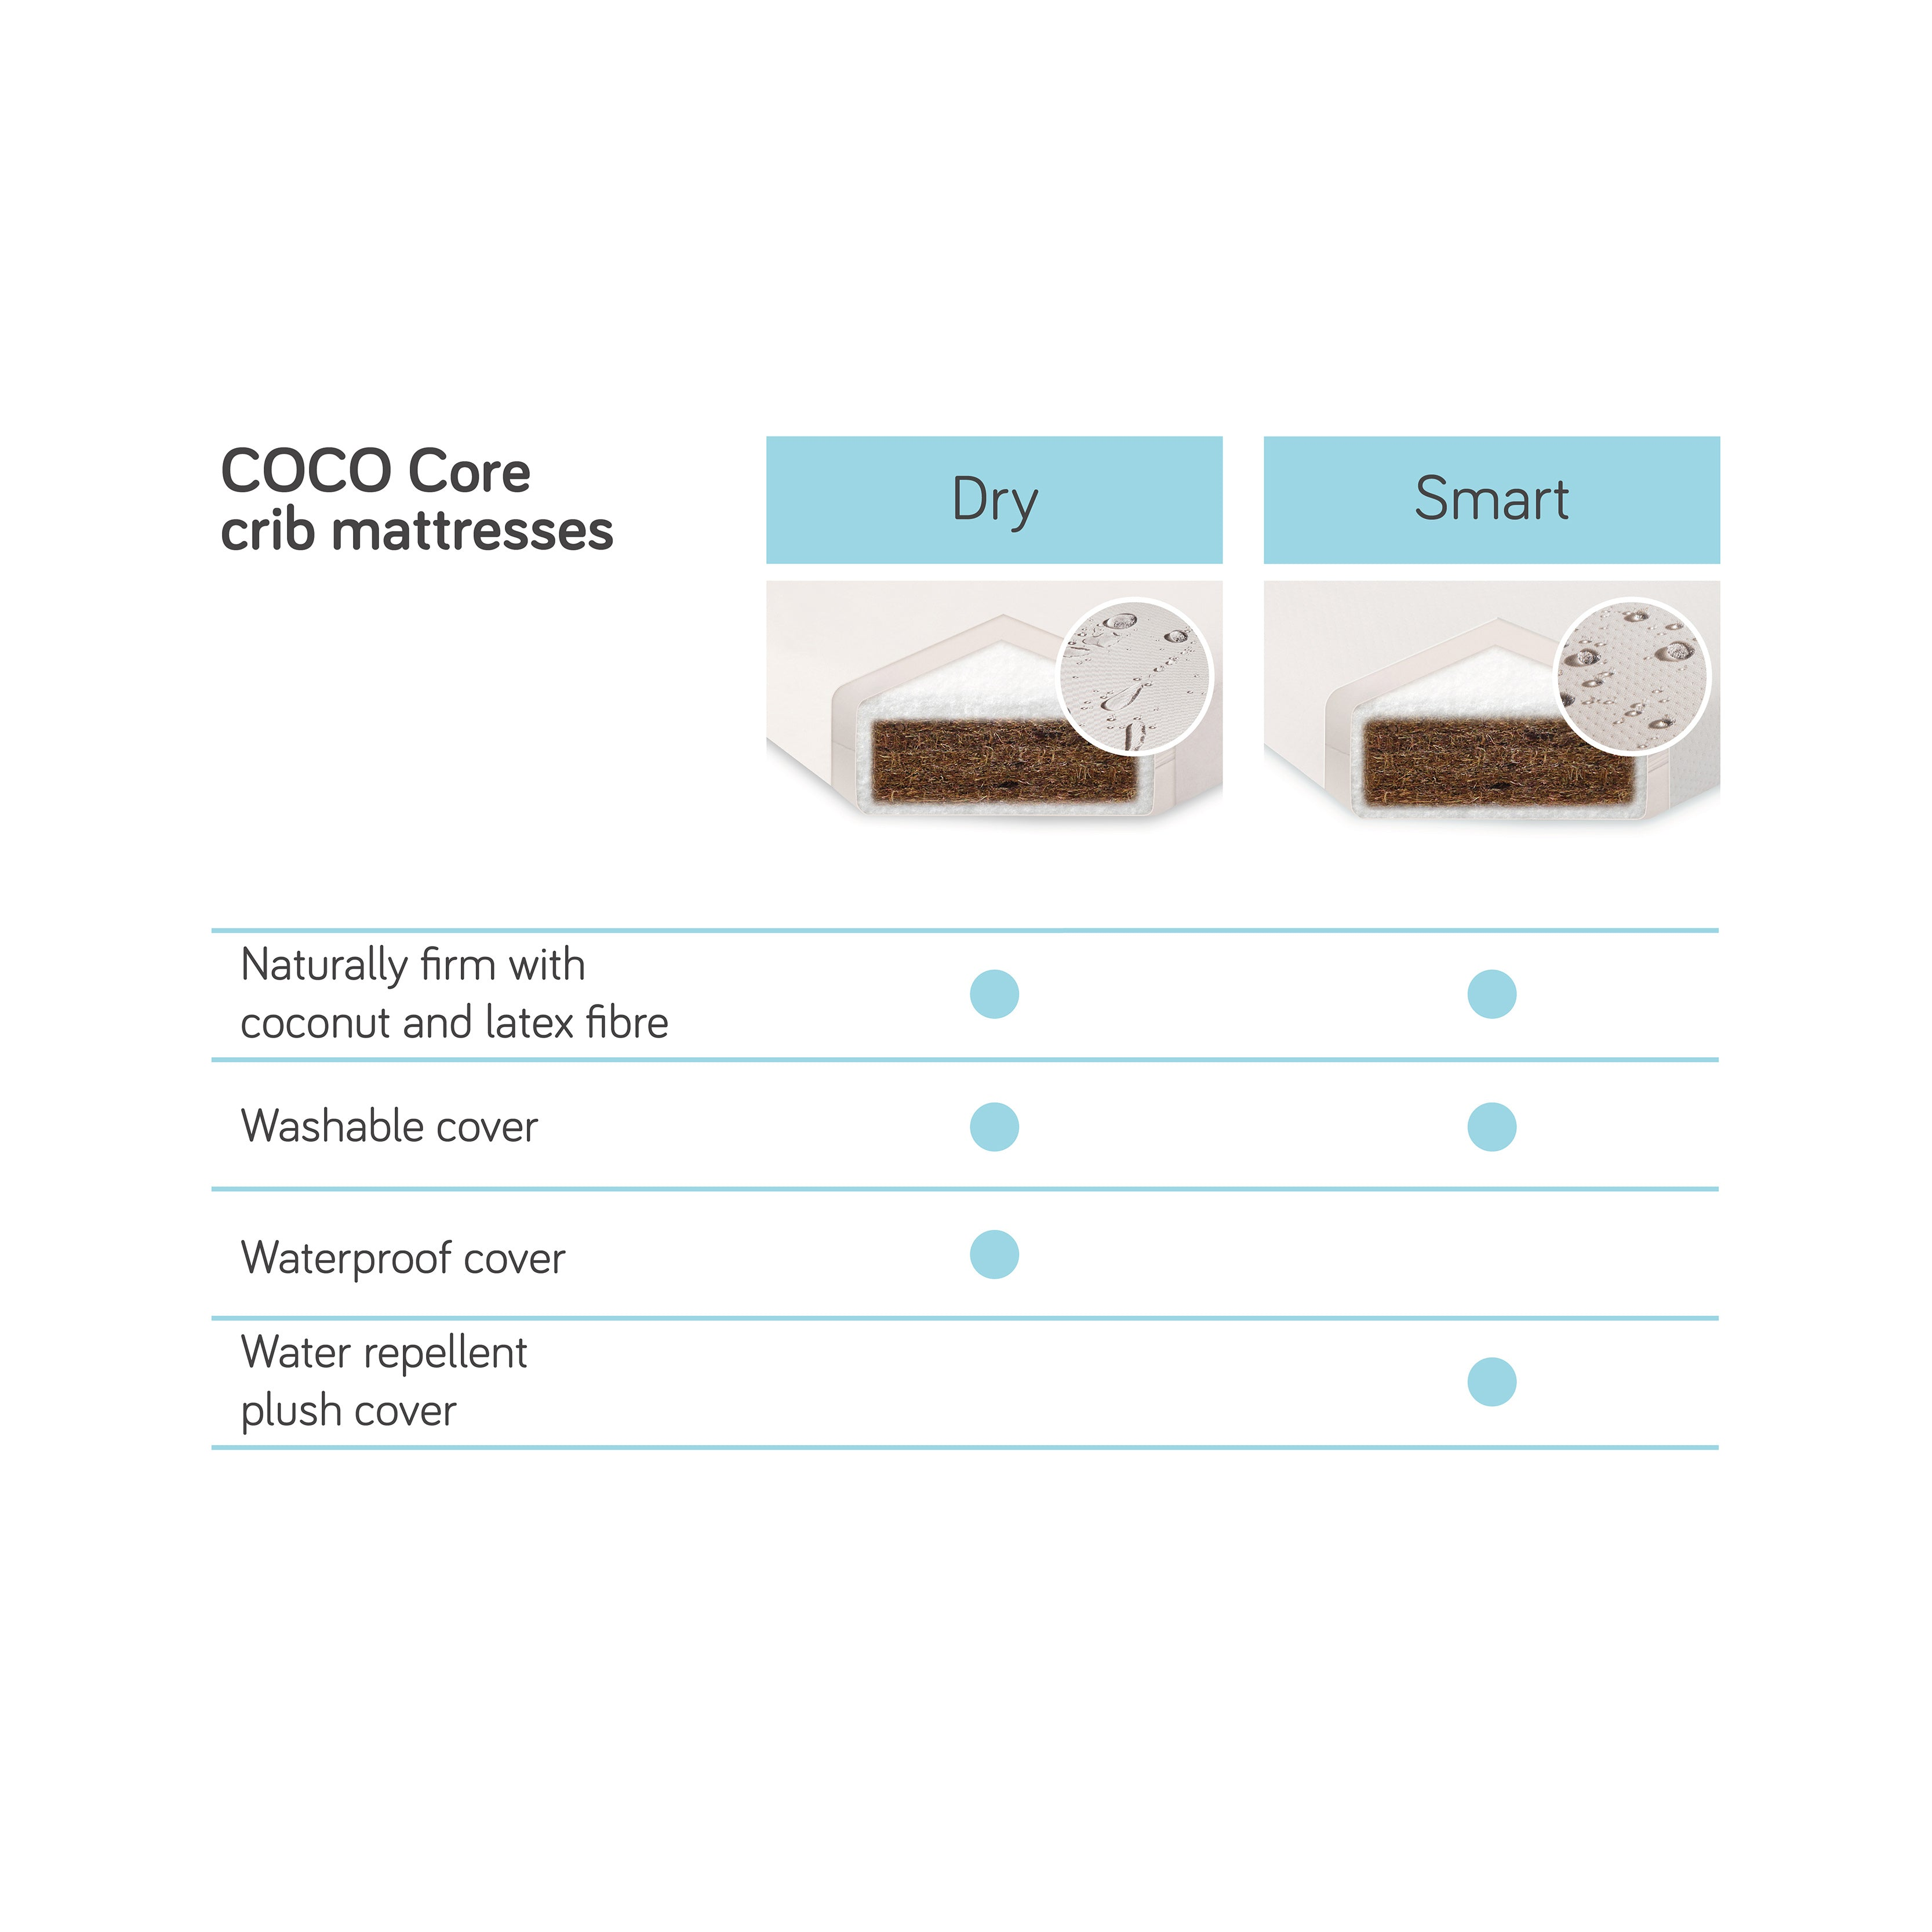 Babyletto Coco Core Non-Toxic Crib Mattress With Dry Waterproof Cover